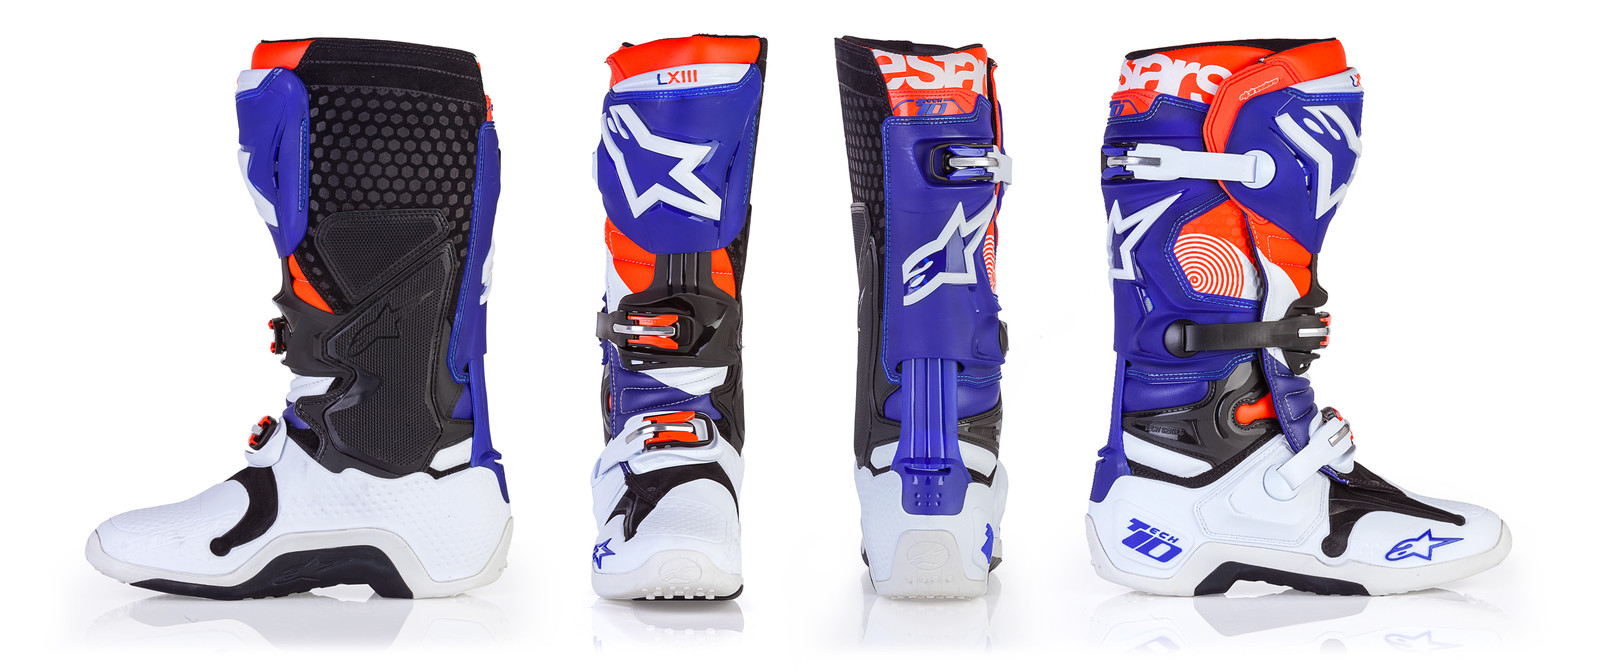 Alpinestars Releases Limited Edition Indianapolis Boots